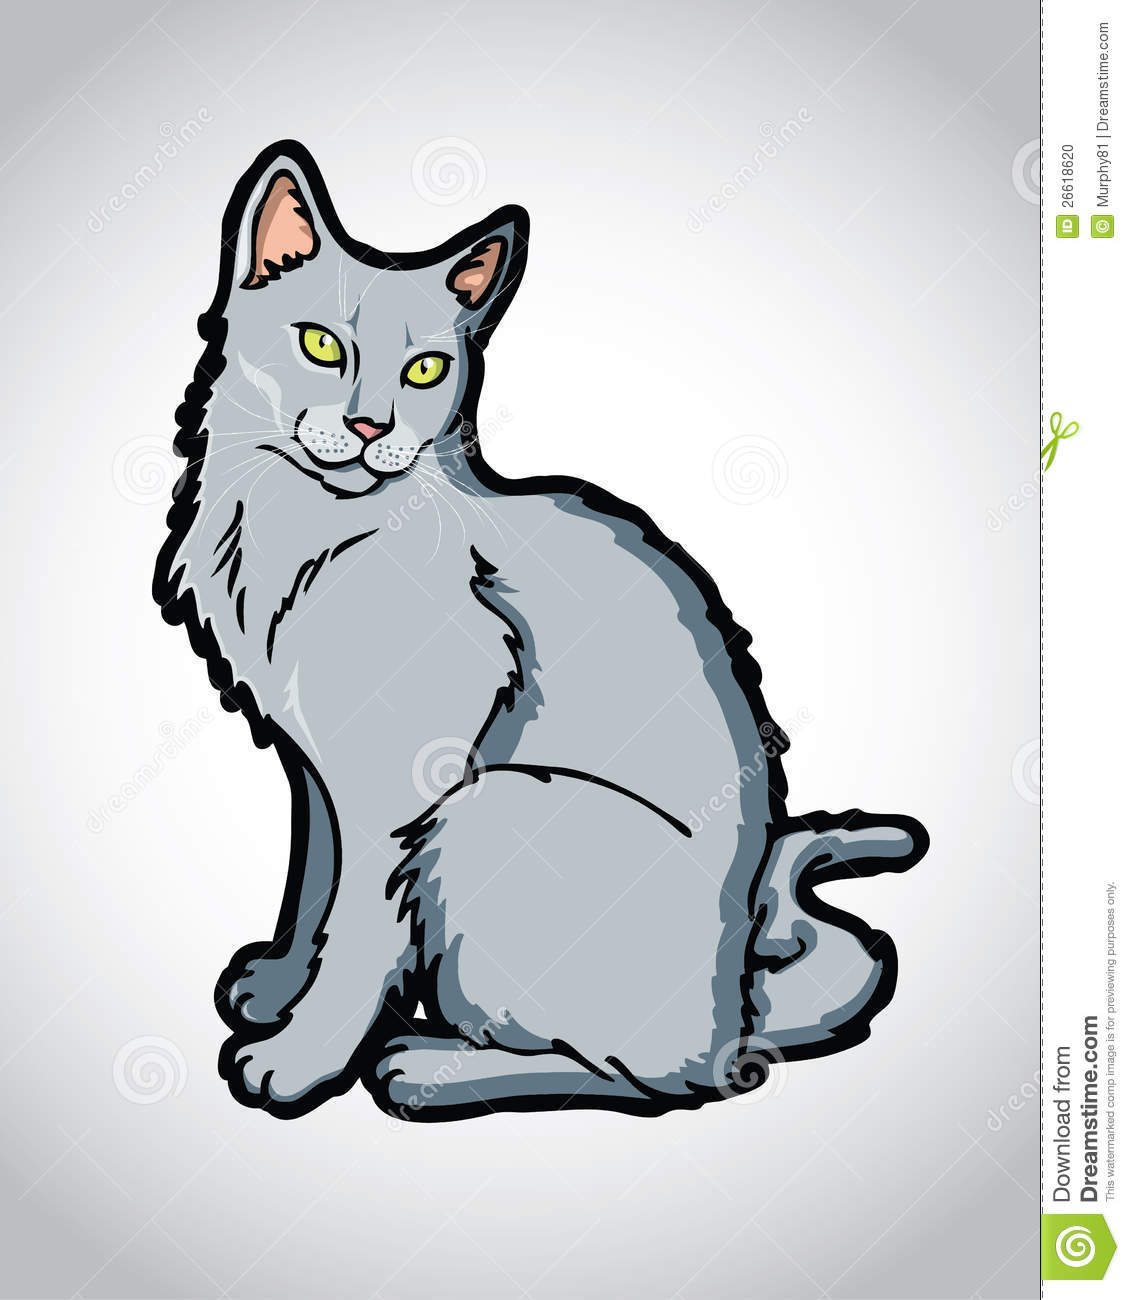 Chartreux clipart #7, Download drawings